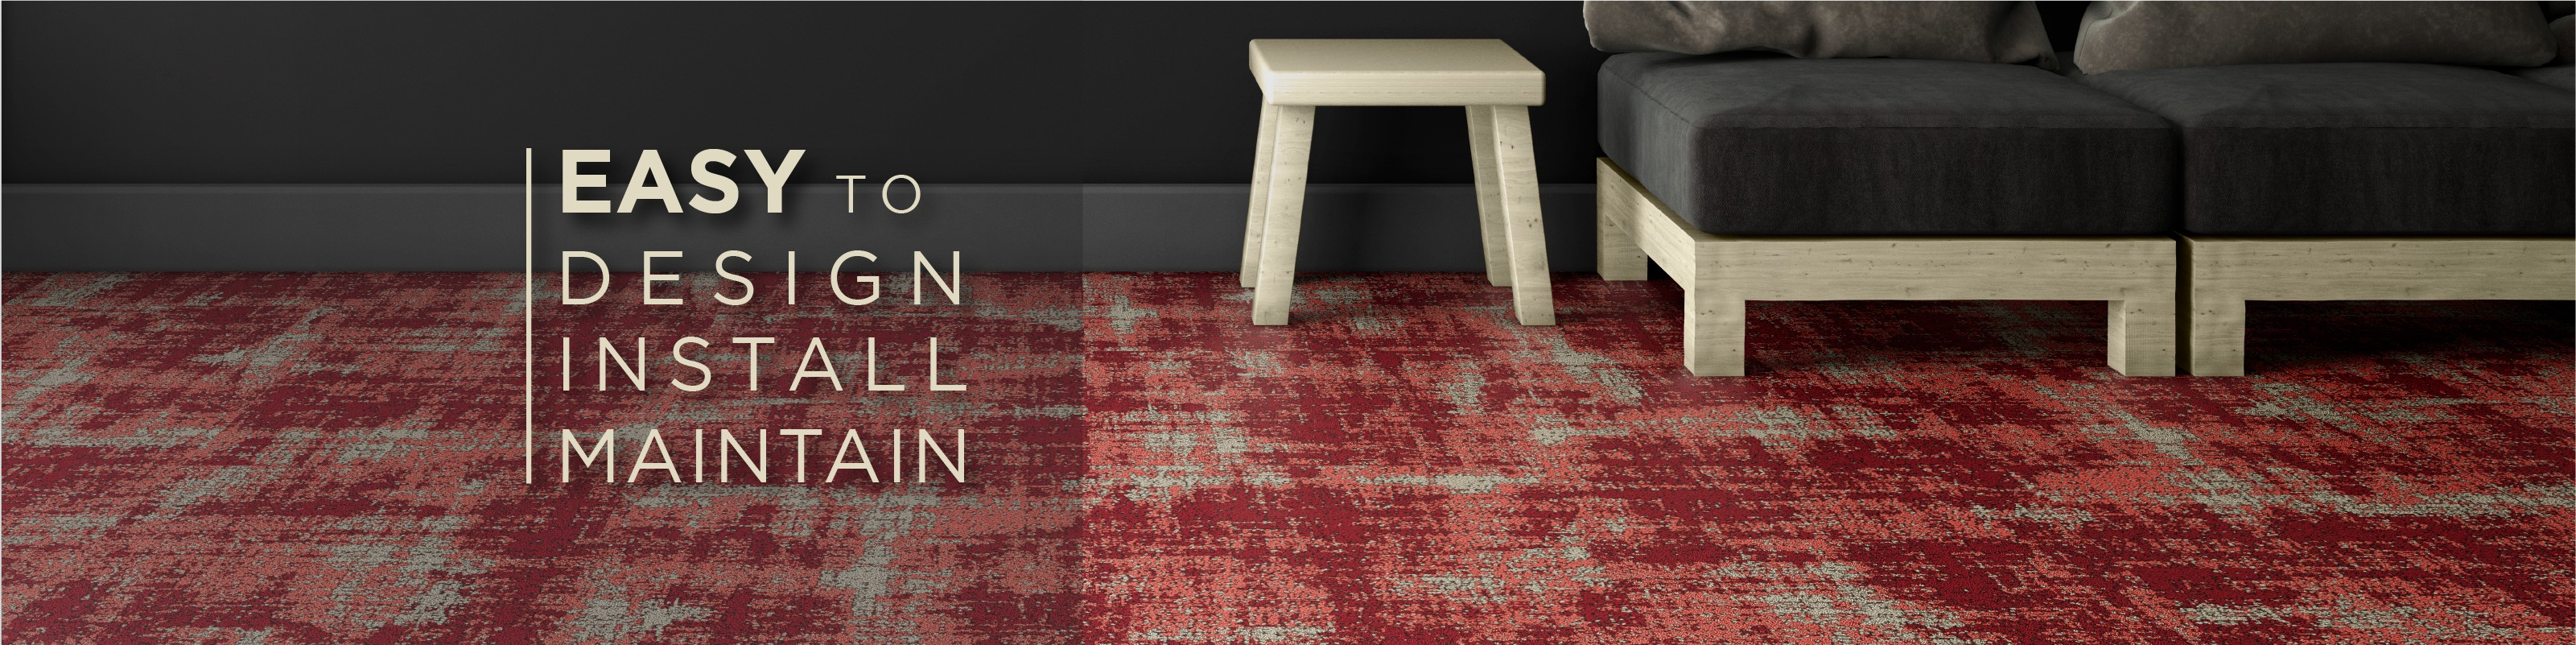 Welspun Flooring cover image